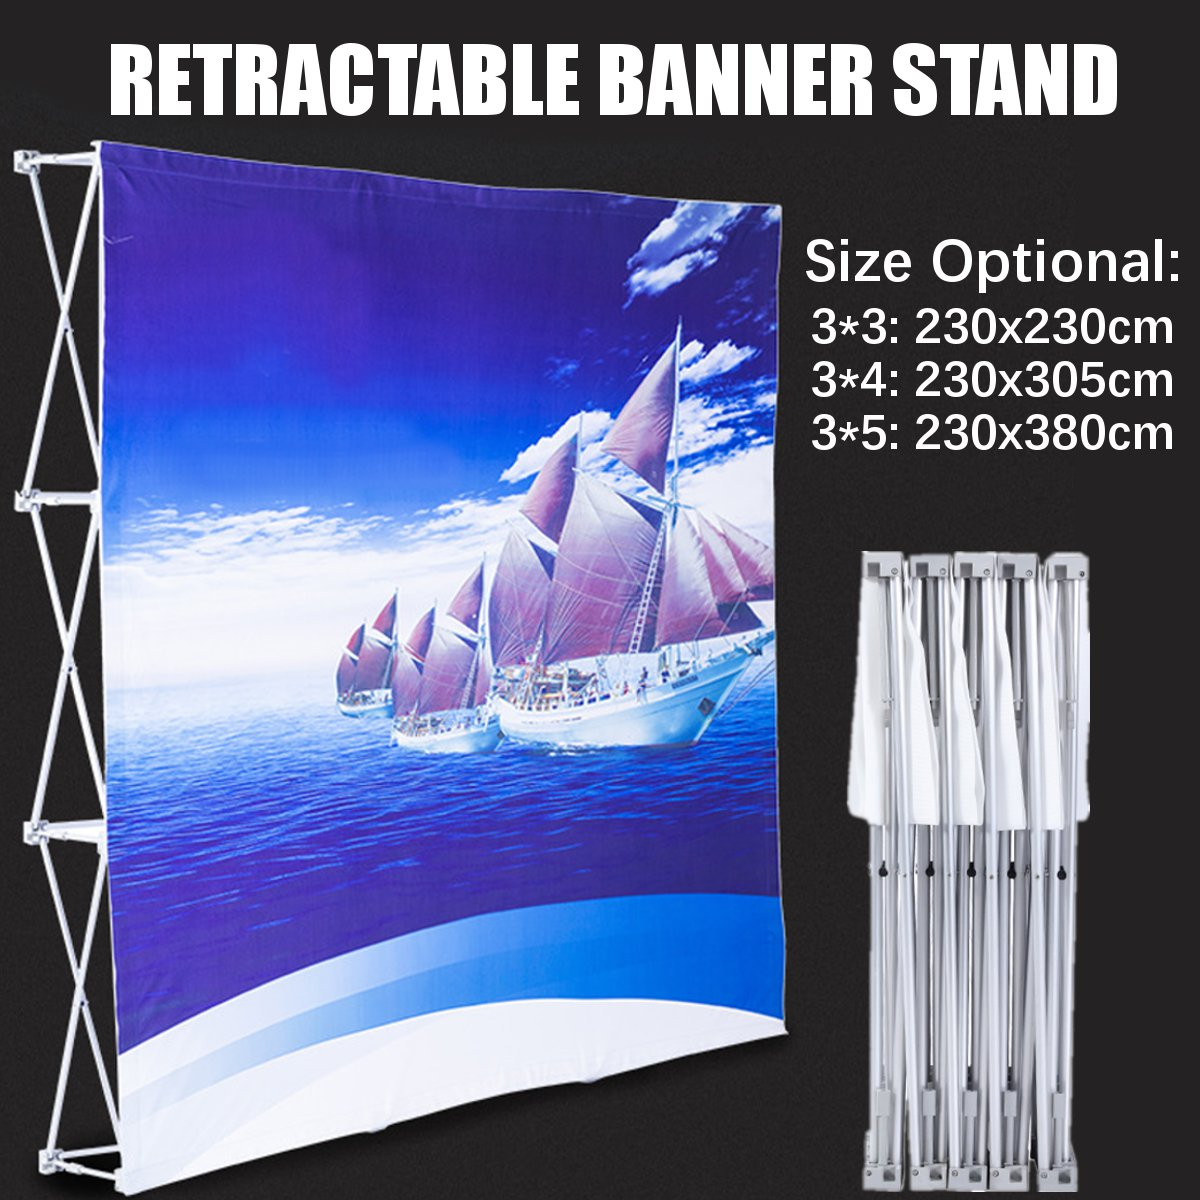 Aluminum Alloy Retractable Banner Stand Presentation Rack Flower Wall Frame Wedding Backdrop Decor 230*230cm/230*305cm/230*380cm